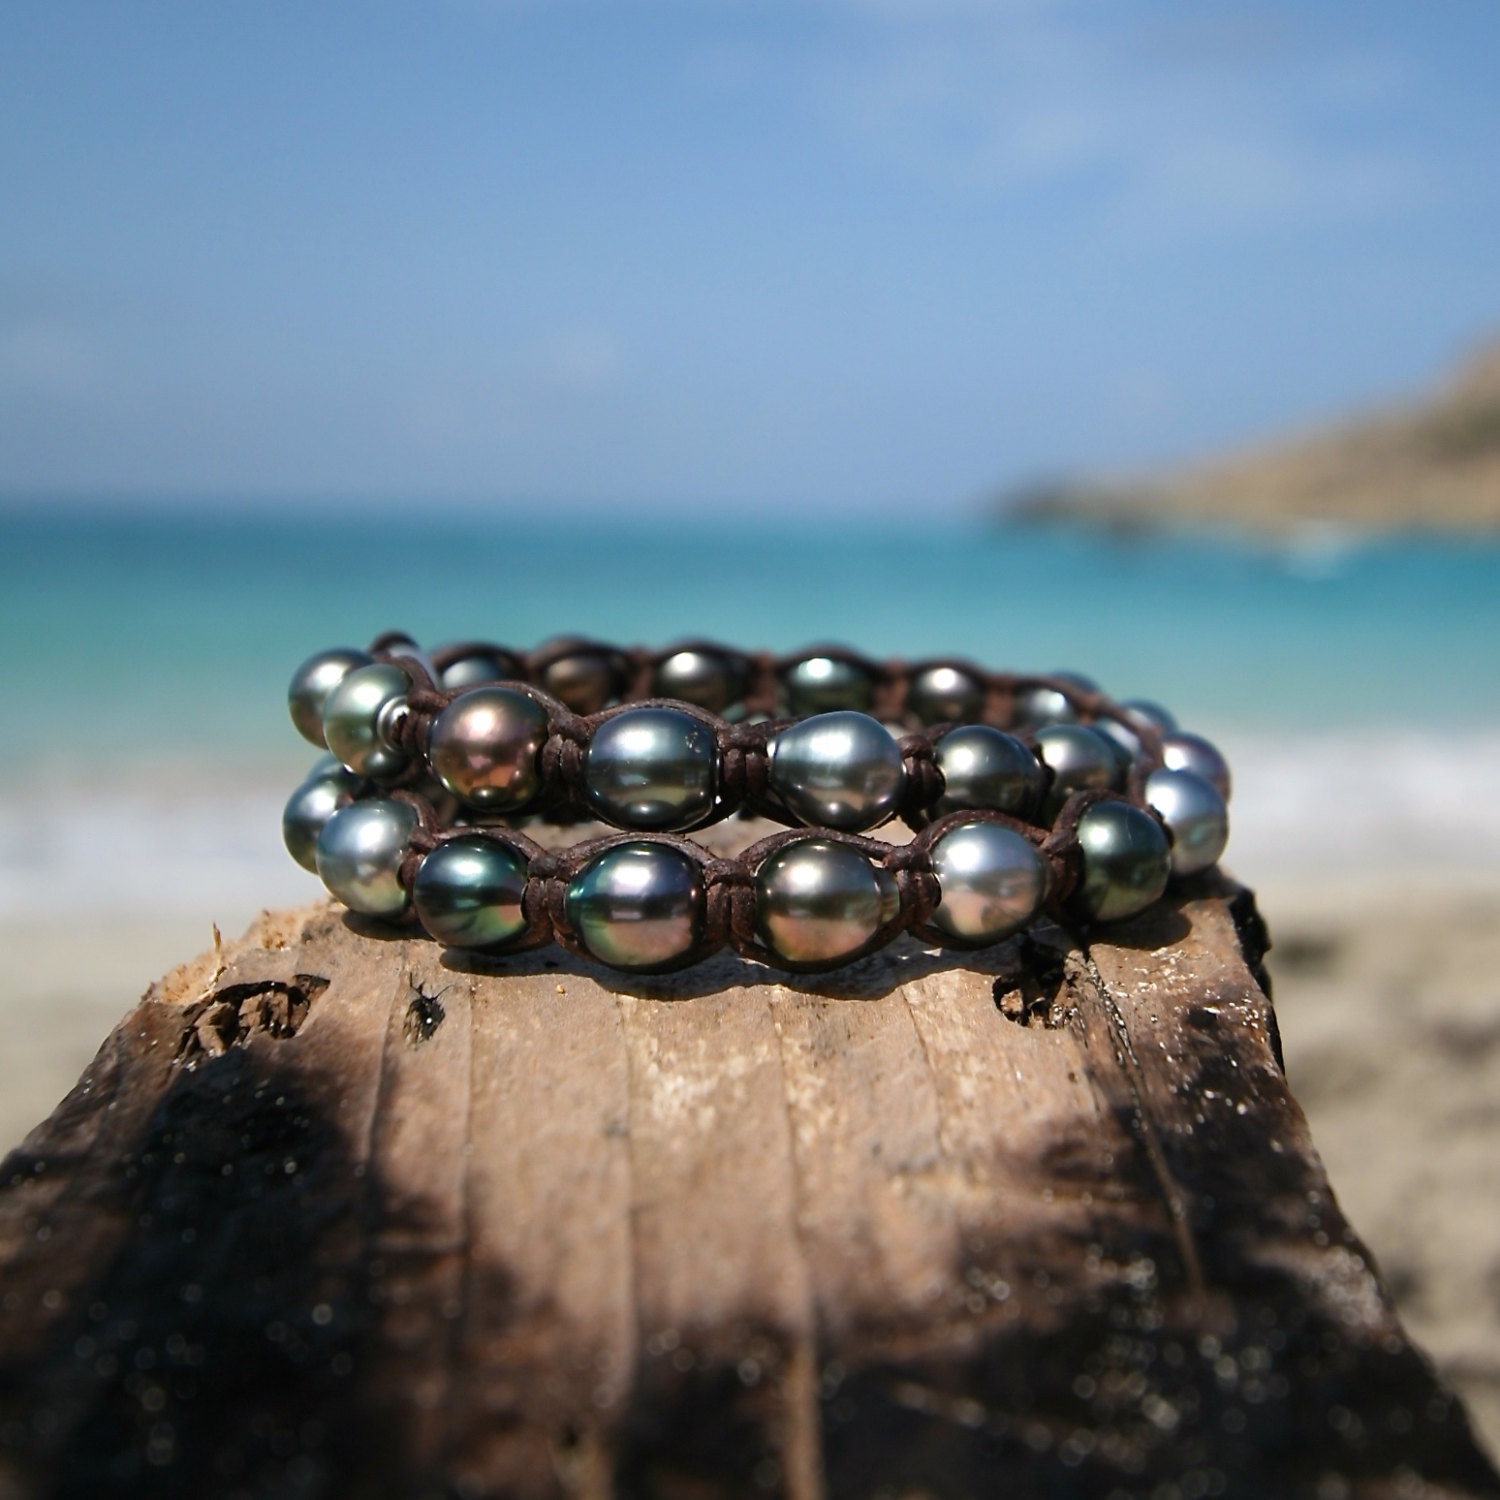 Double wrap of 32 Tahitian pearls bracelet, cultured pearls, St barthelemy island design, black pearls, boho, beach jewelry, gypsy chic,